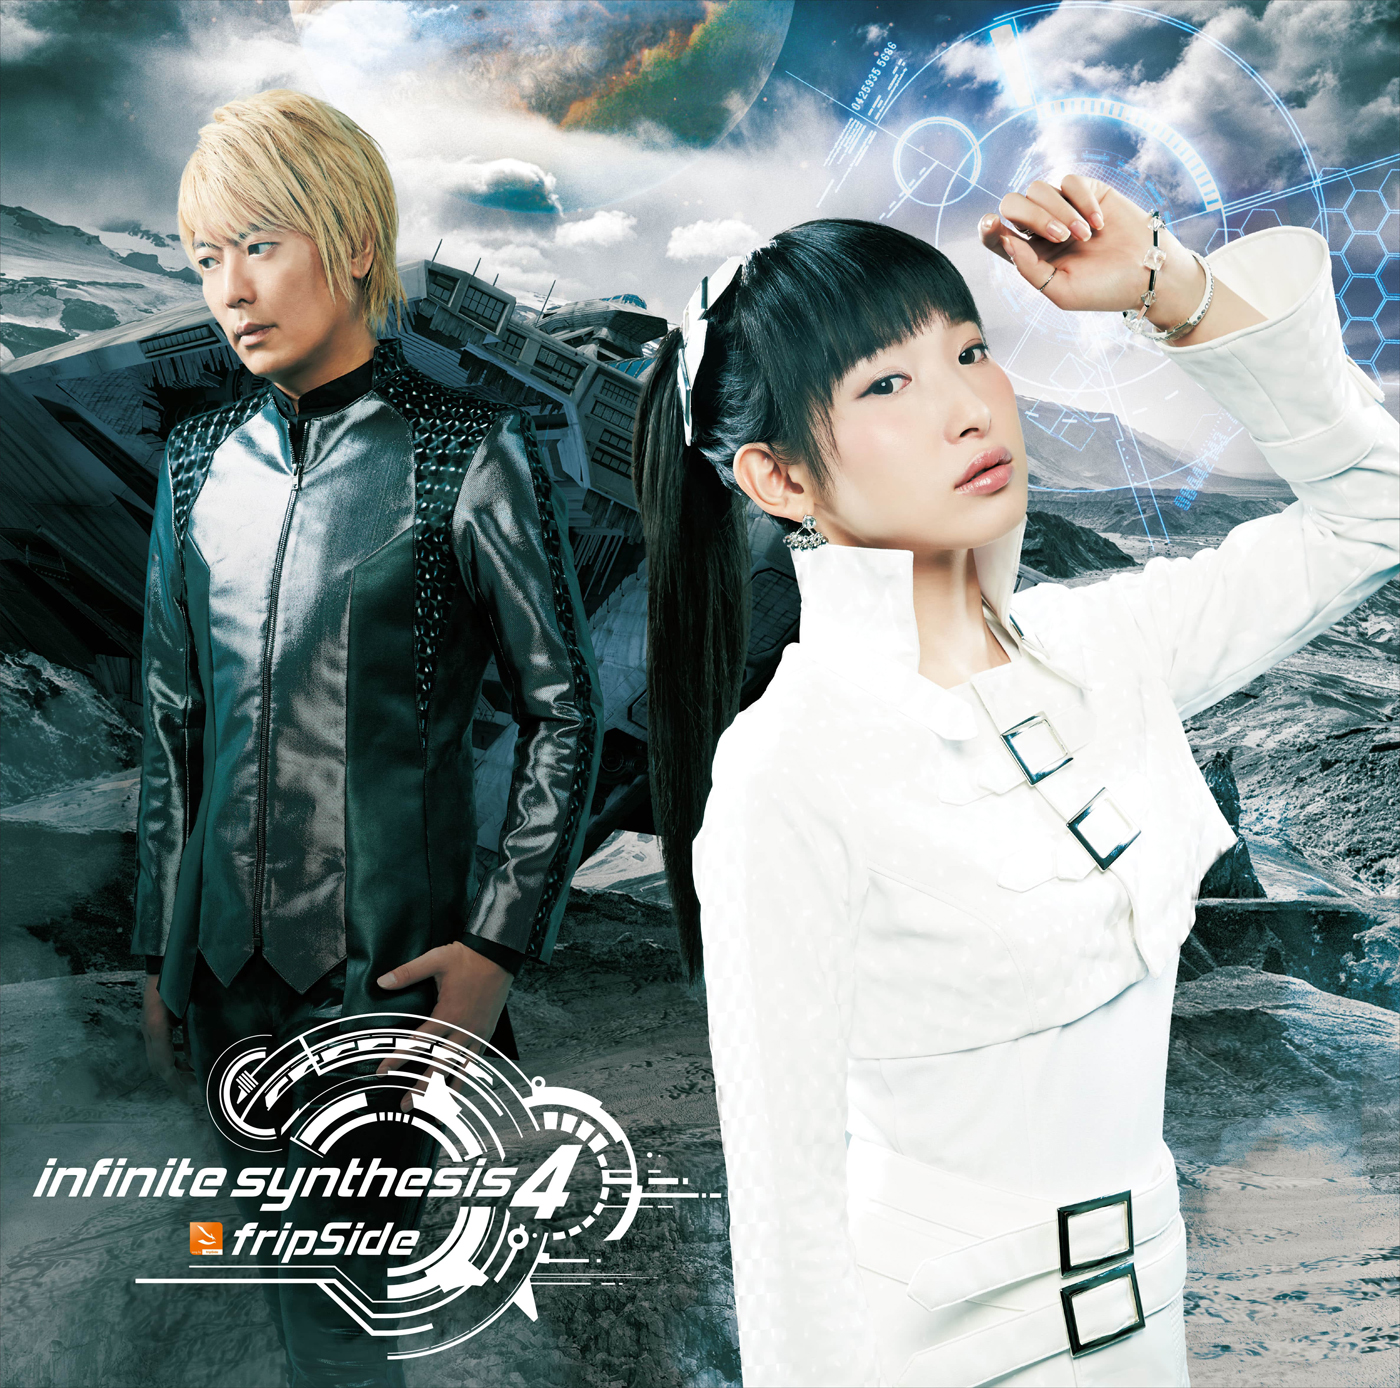 20181011.1600.2 fripSide - infinite synthesis 4 cover 2.jpg